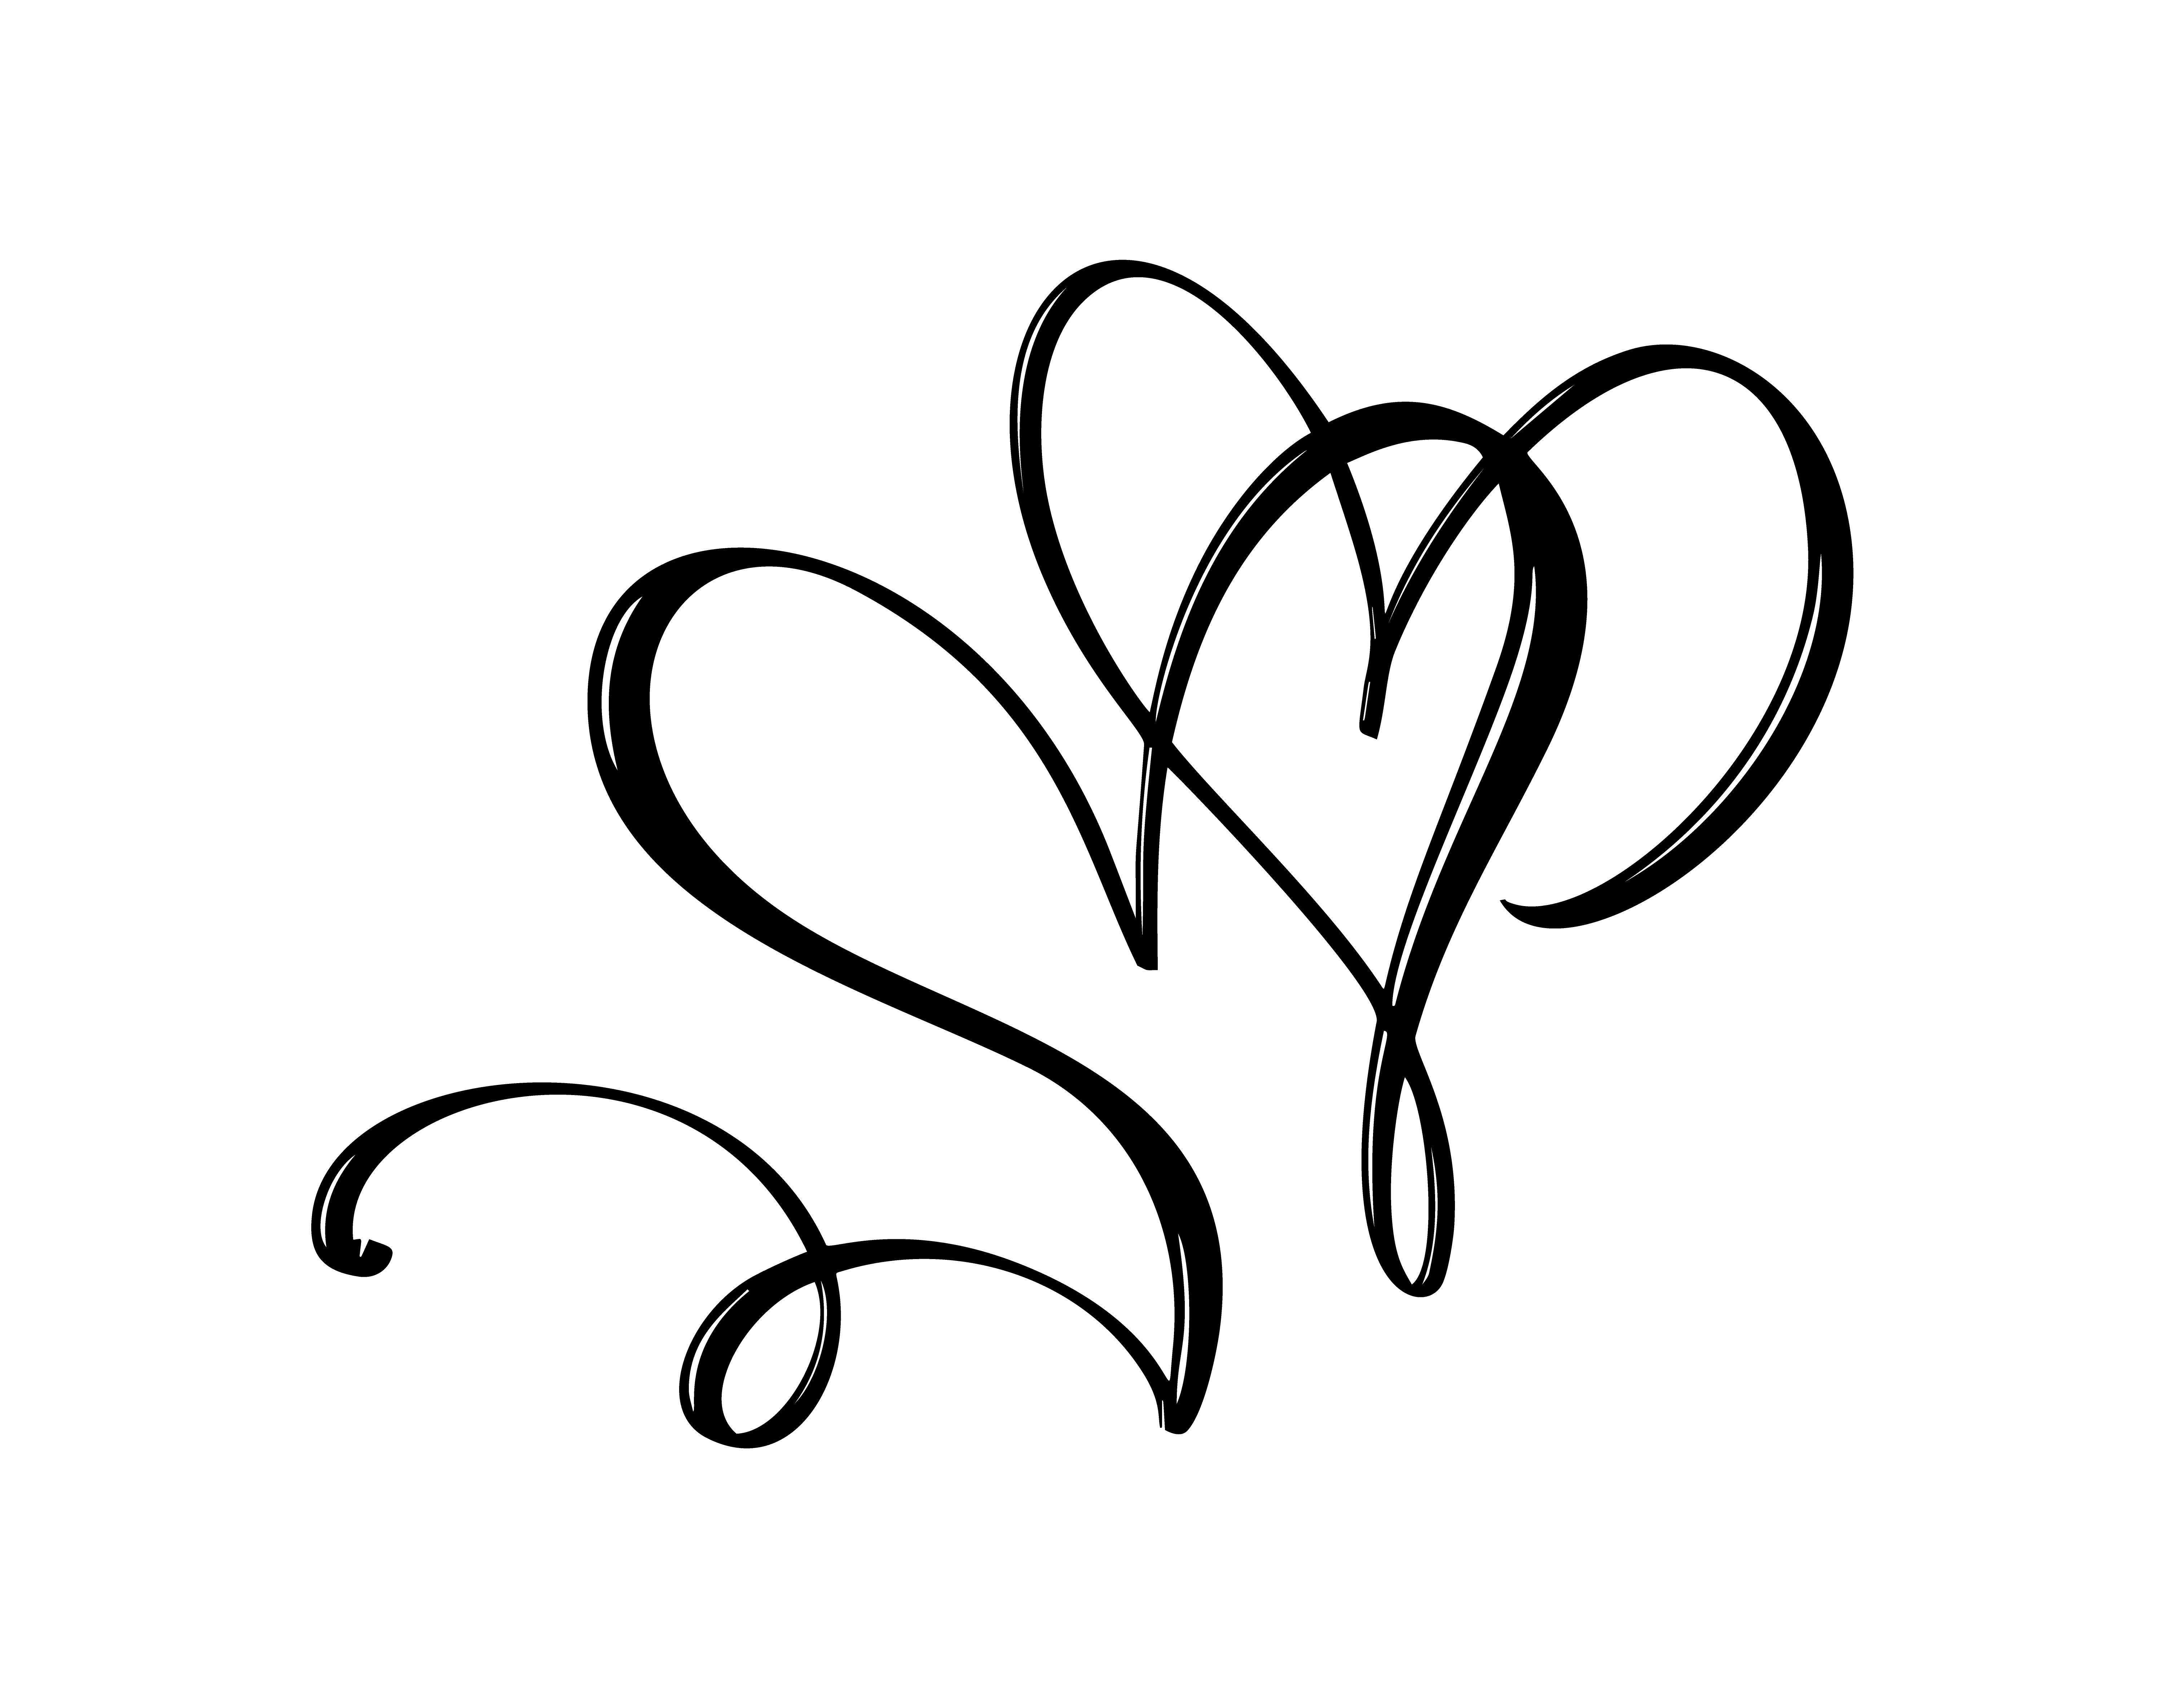 Hand Drawn Two Heart Love Sign Romantic Calligraphy